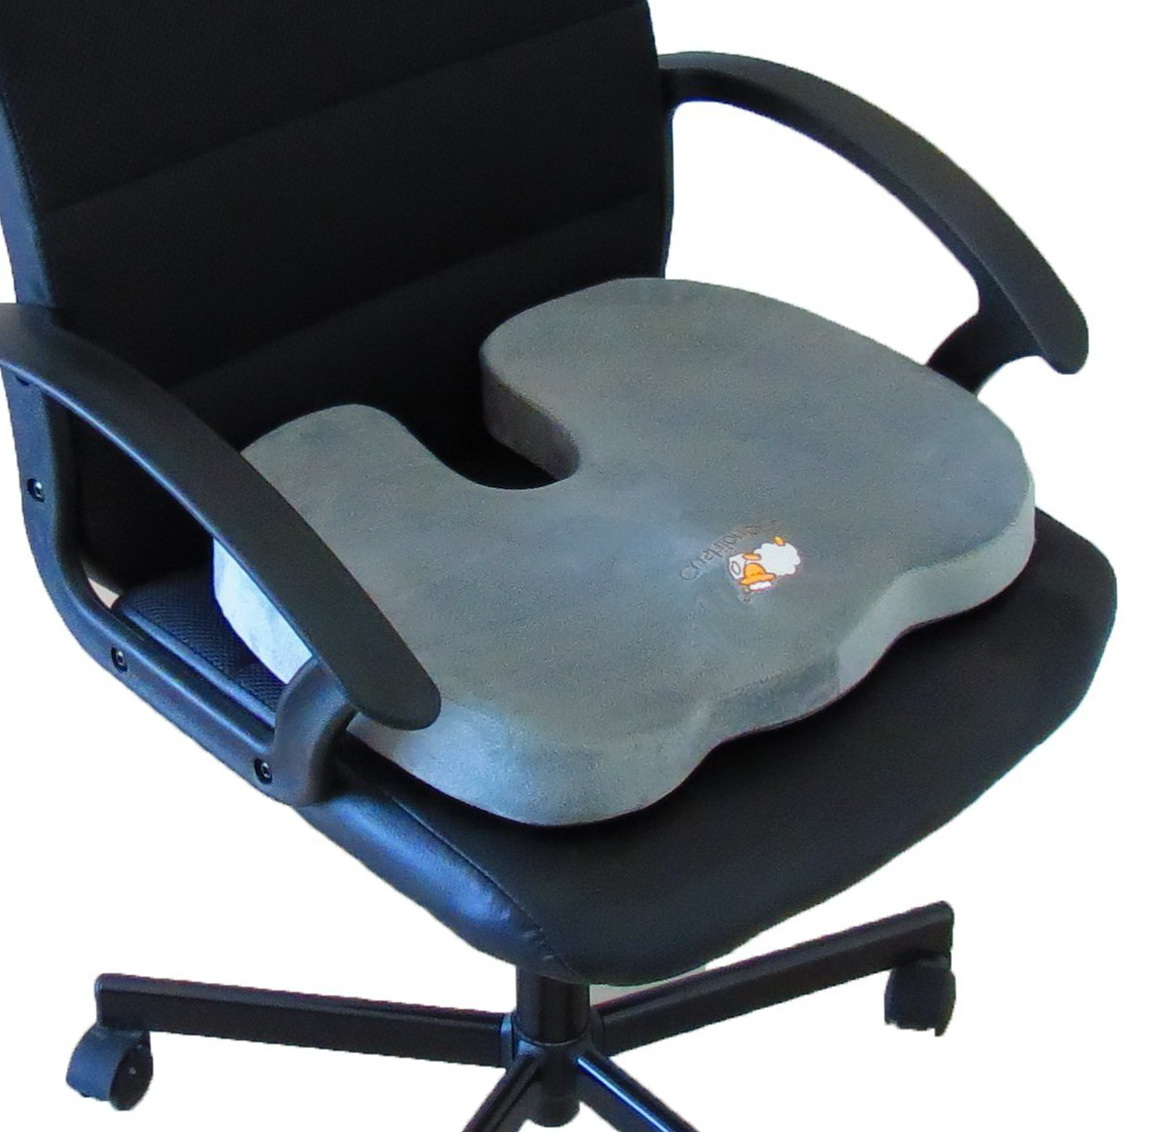 Orthopedic Seat Cushion For Cars